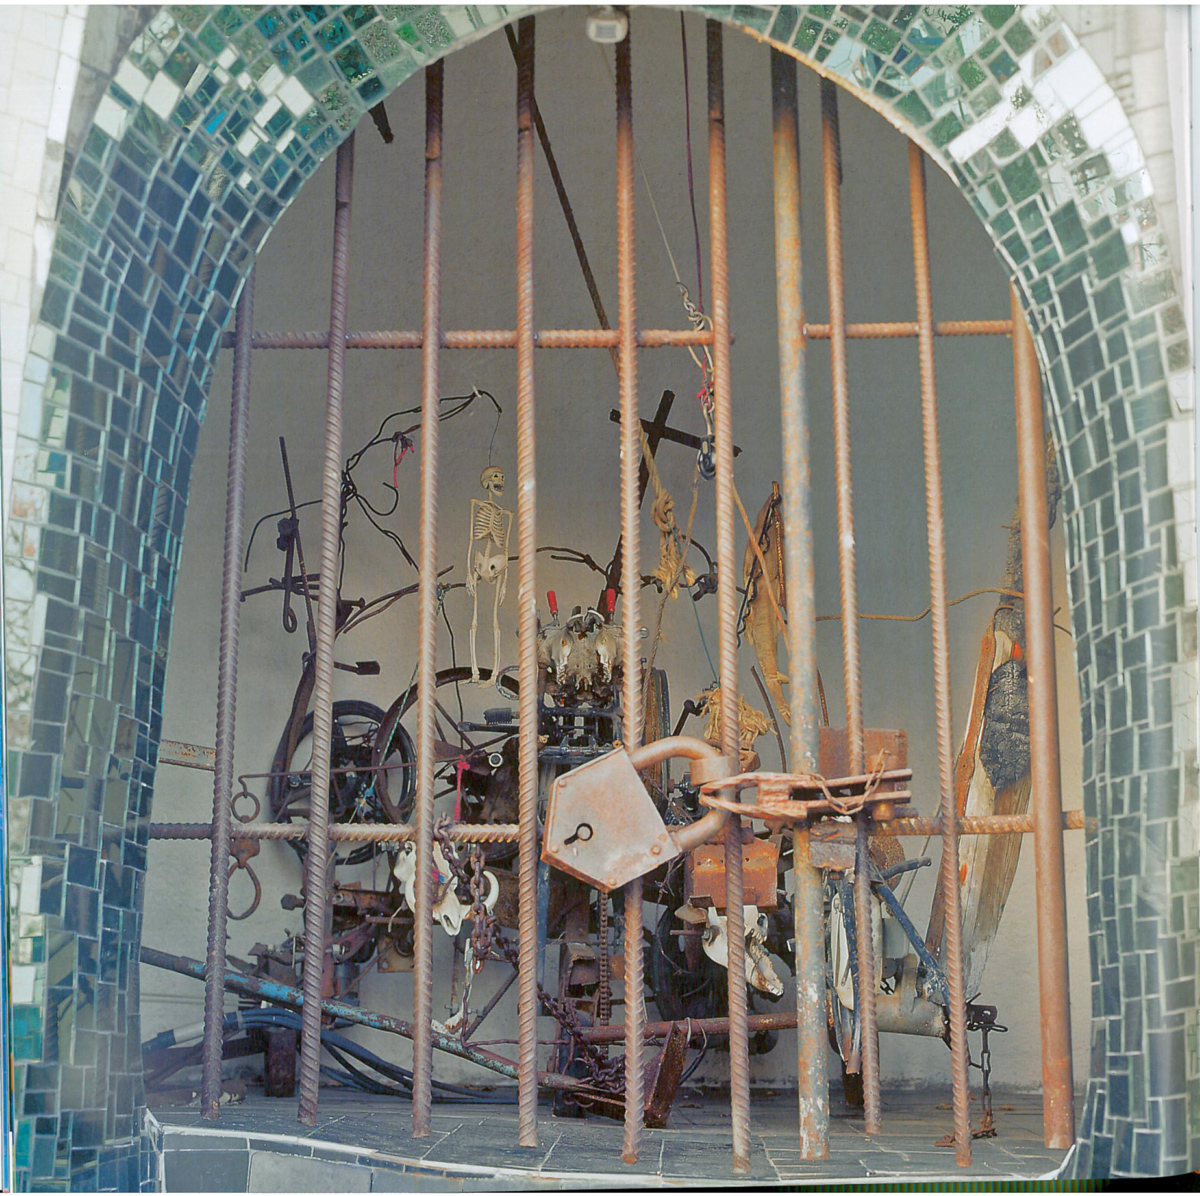 "Inside Justice, seen from the rear, is Jean Tinguely's motorized construction made in 1985, which represents ""Injustice."" Image courtesy of Il Fondazione Giardino Dei Tarocchi."